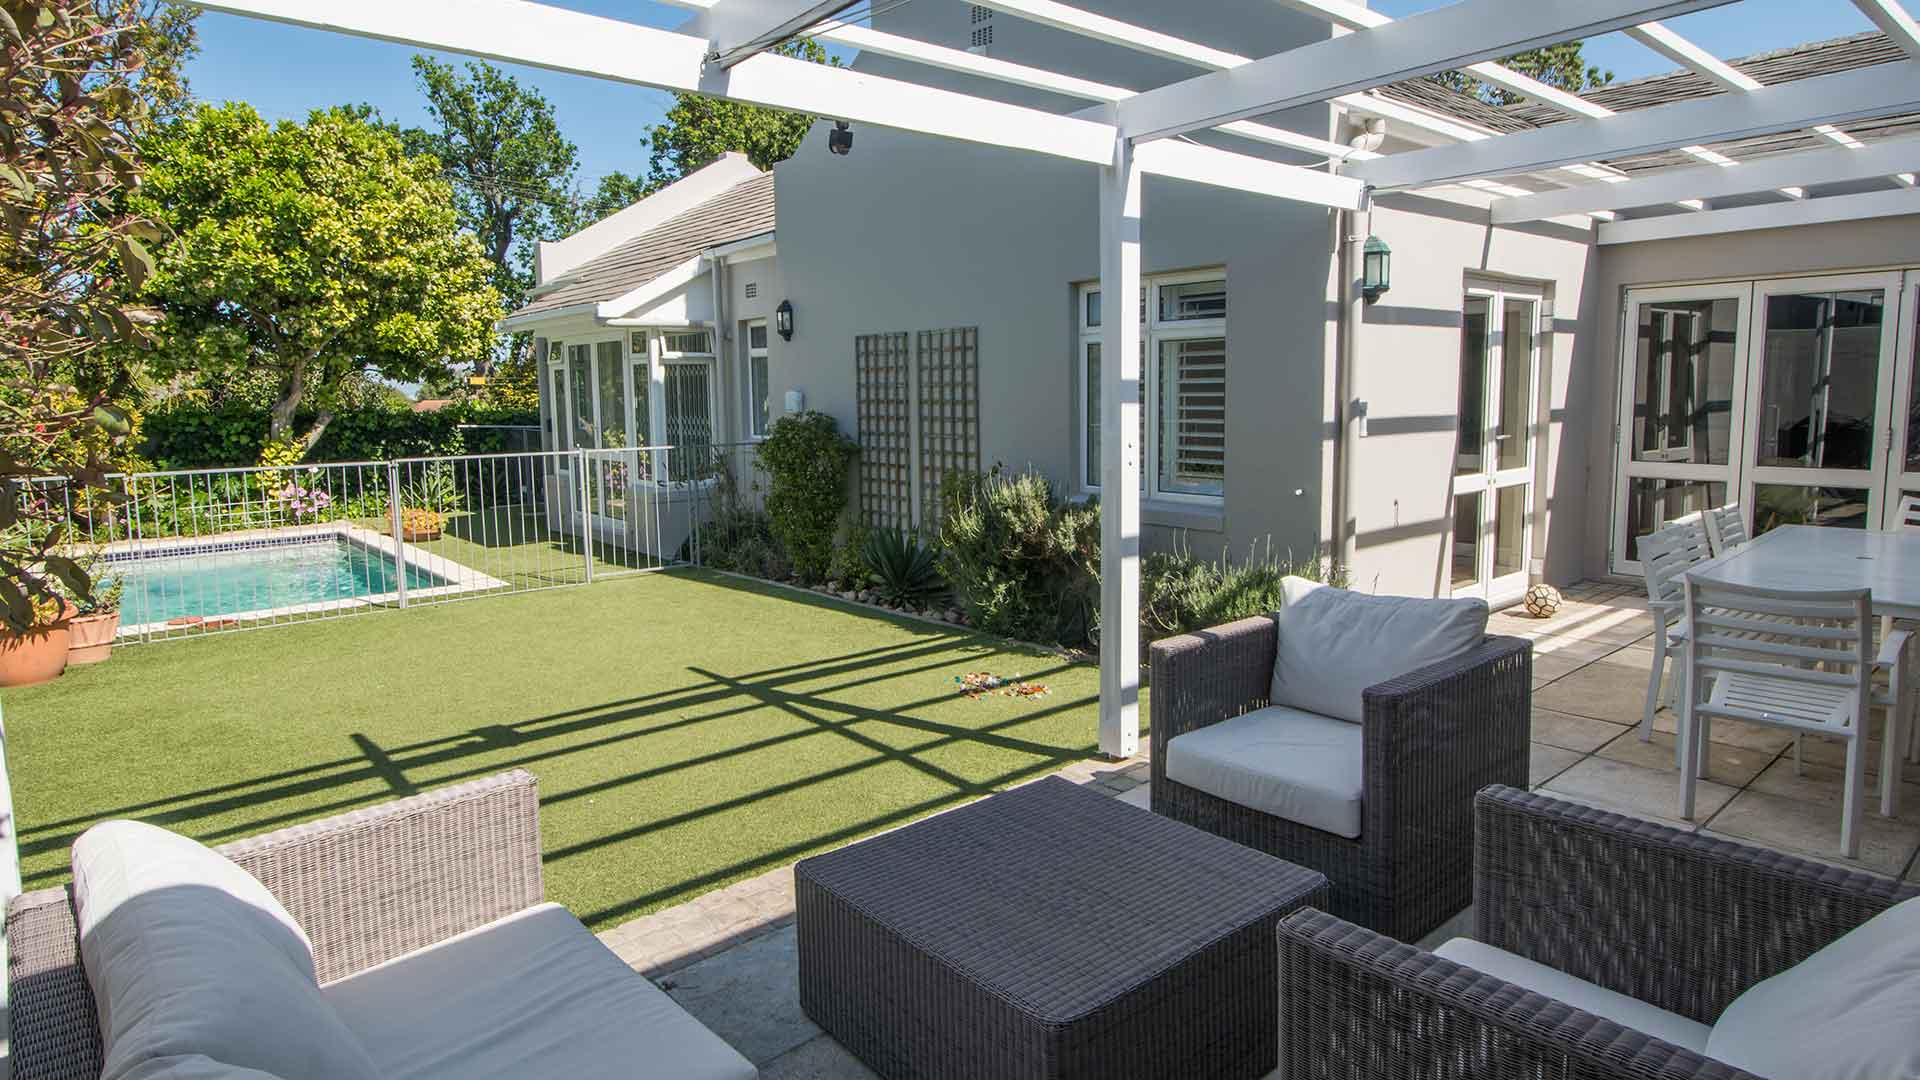 Immaculate, modern lock-and-go home adjacent to Wynberg Boys School – on the border of Upper Kenilworth